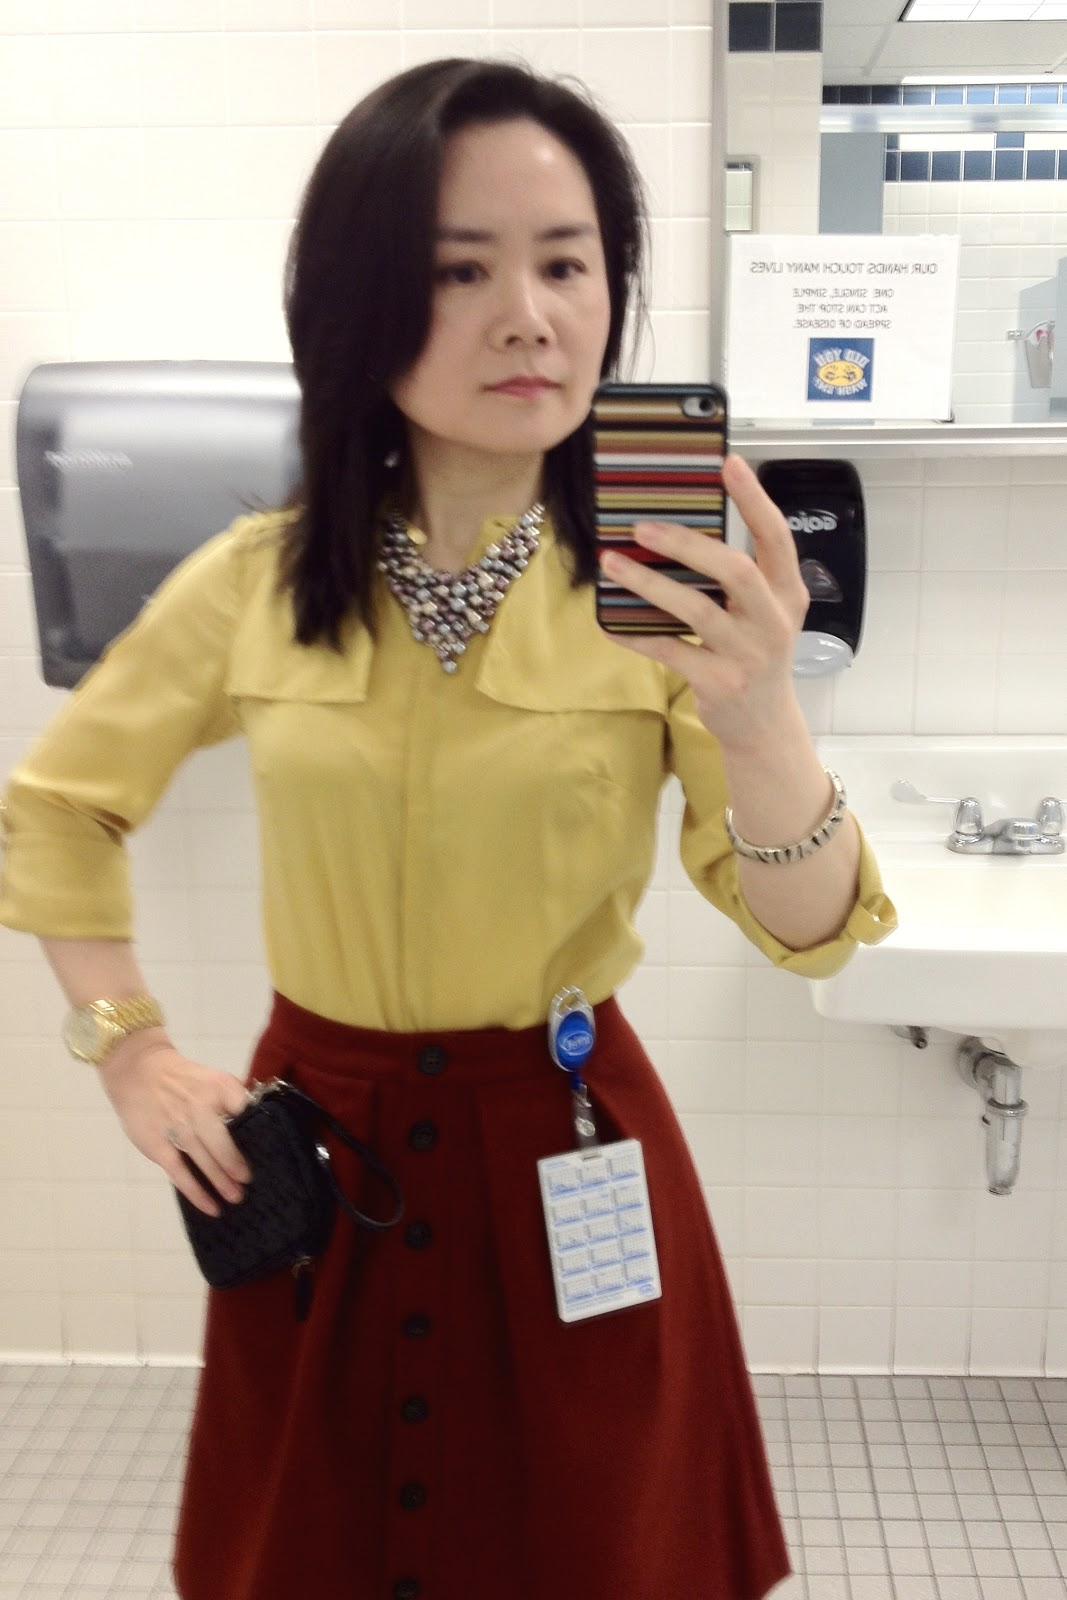 Vicky's Daily Fashion Blog: A Week in Outfits & Nordstrom ...